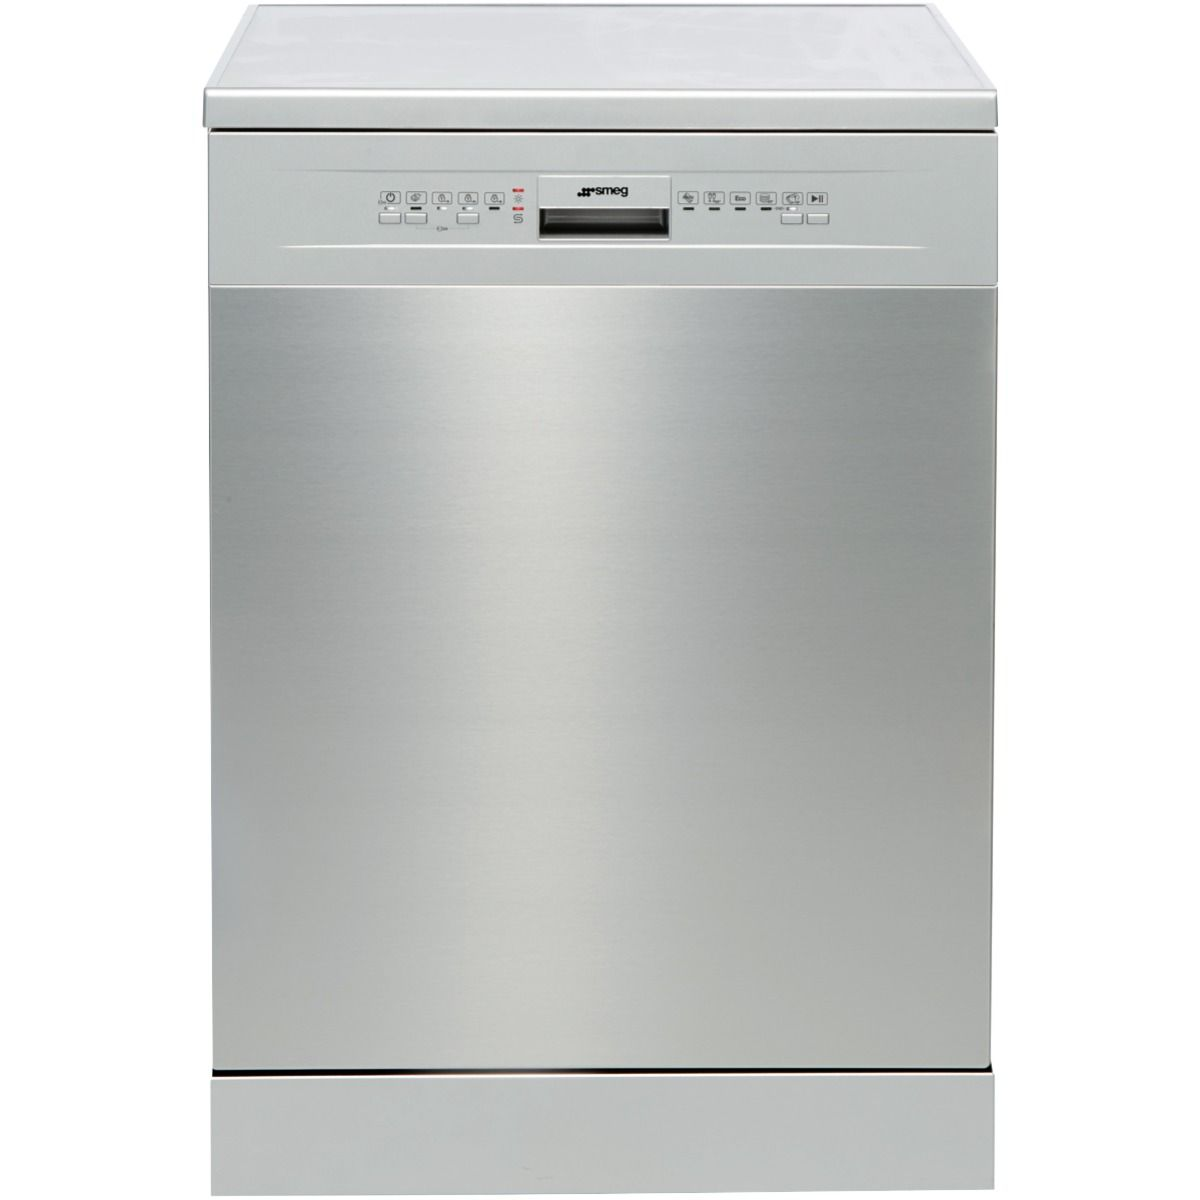 Smeg Dwa6214s Stainless Steel Freestanding Dishwasher At The Good Guys Countertop Dishwasher Freestanding Dishwashers Smeg